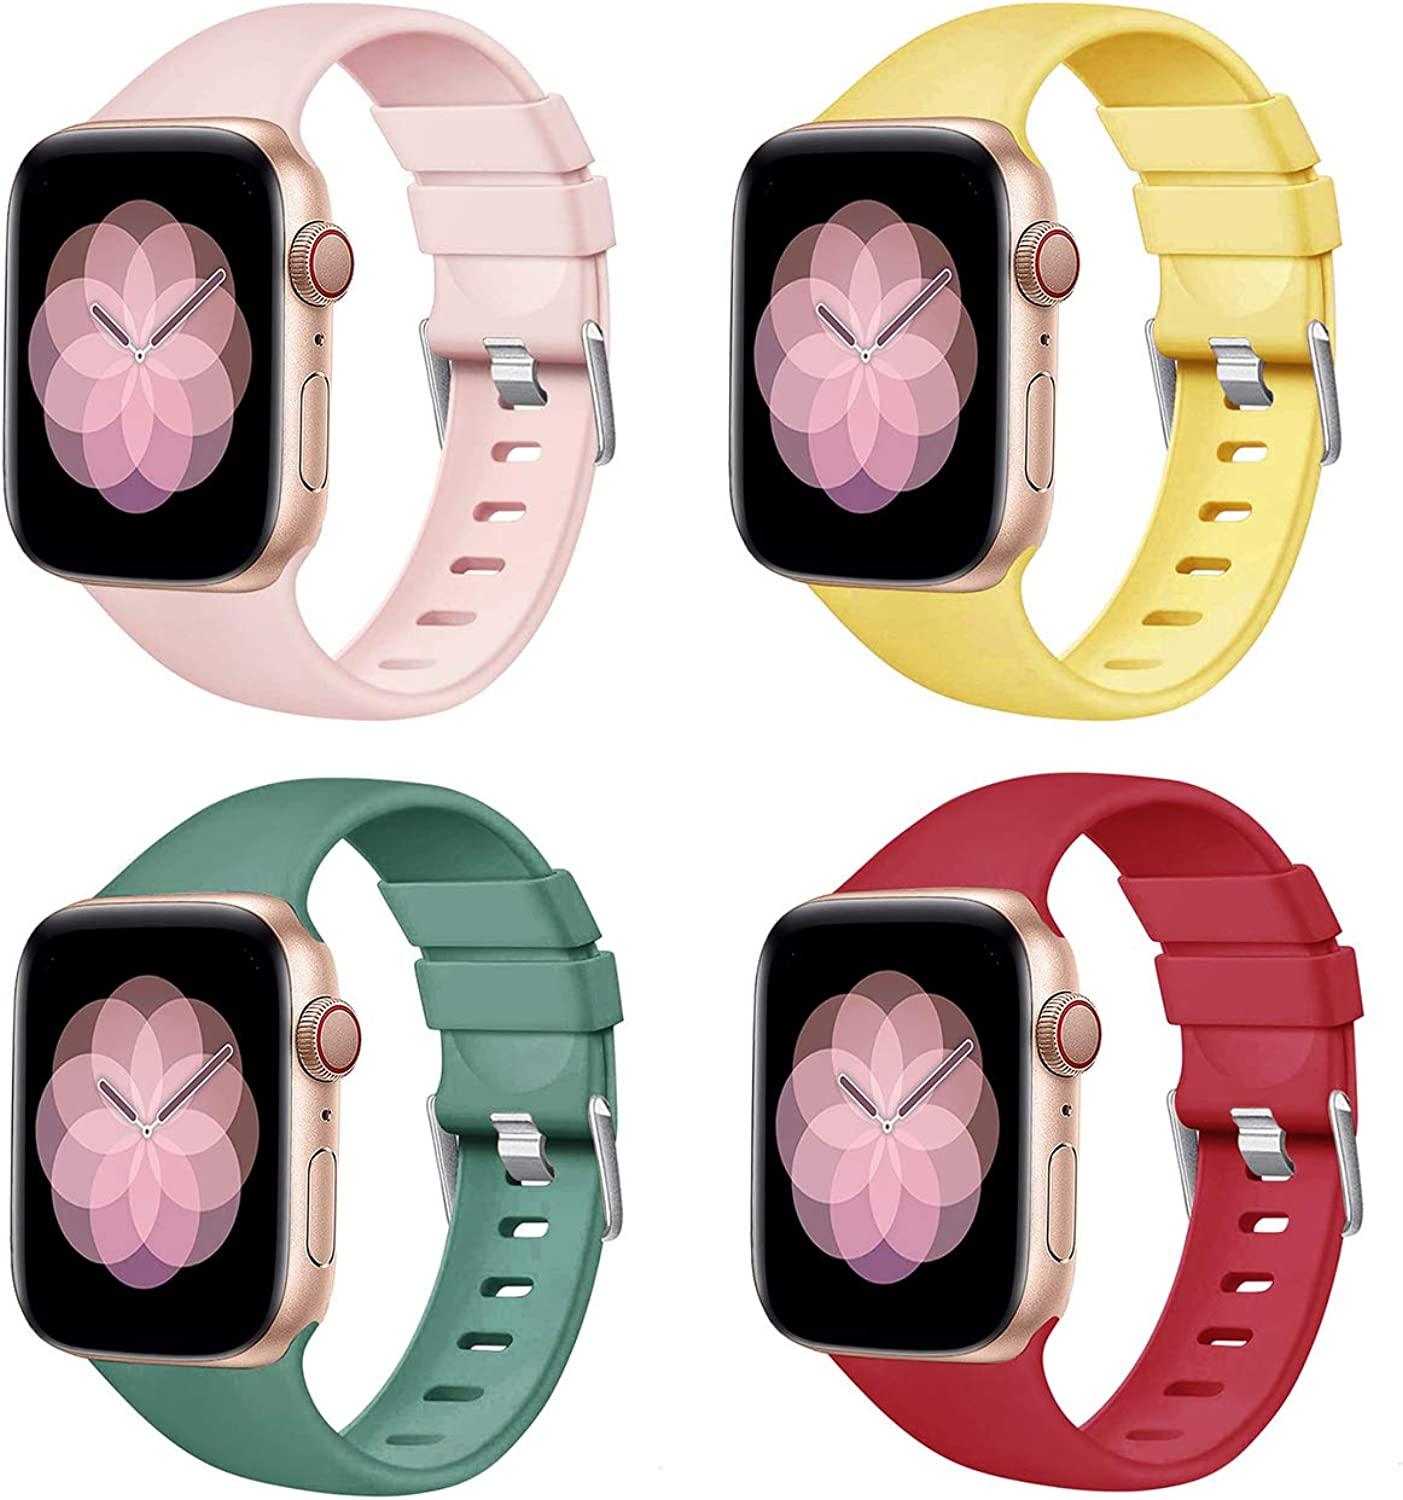 PROSRAT 4-Pack Bands Compatible with Apple Watch Band 38mm/40mm,Soft Silicone Strap Wristband for iWatch Series SE/6/5/4/3/2/1 men women